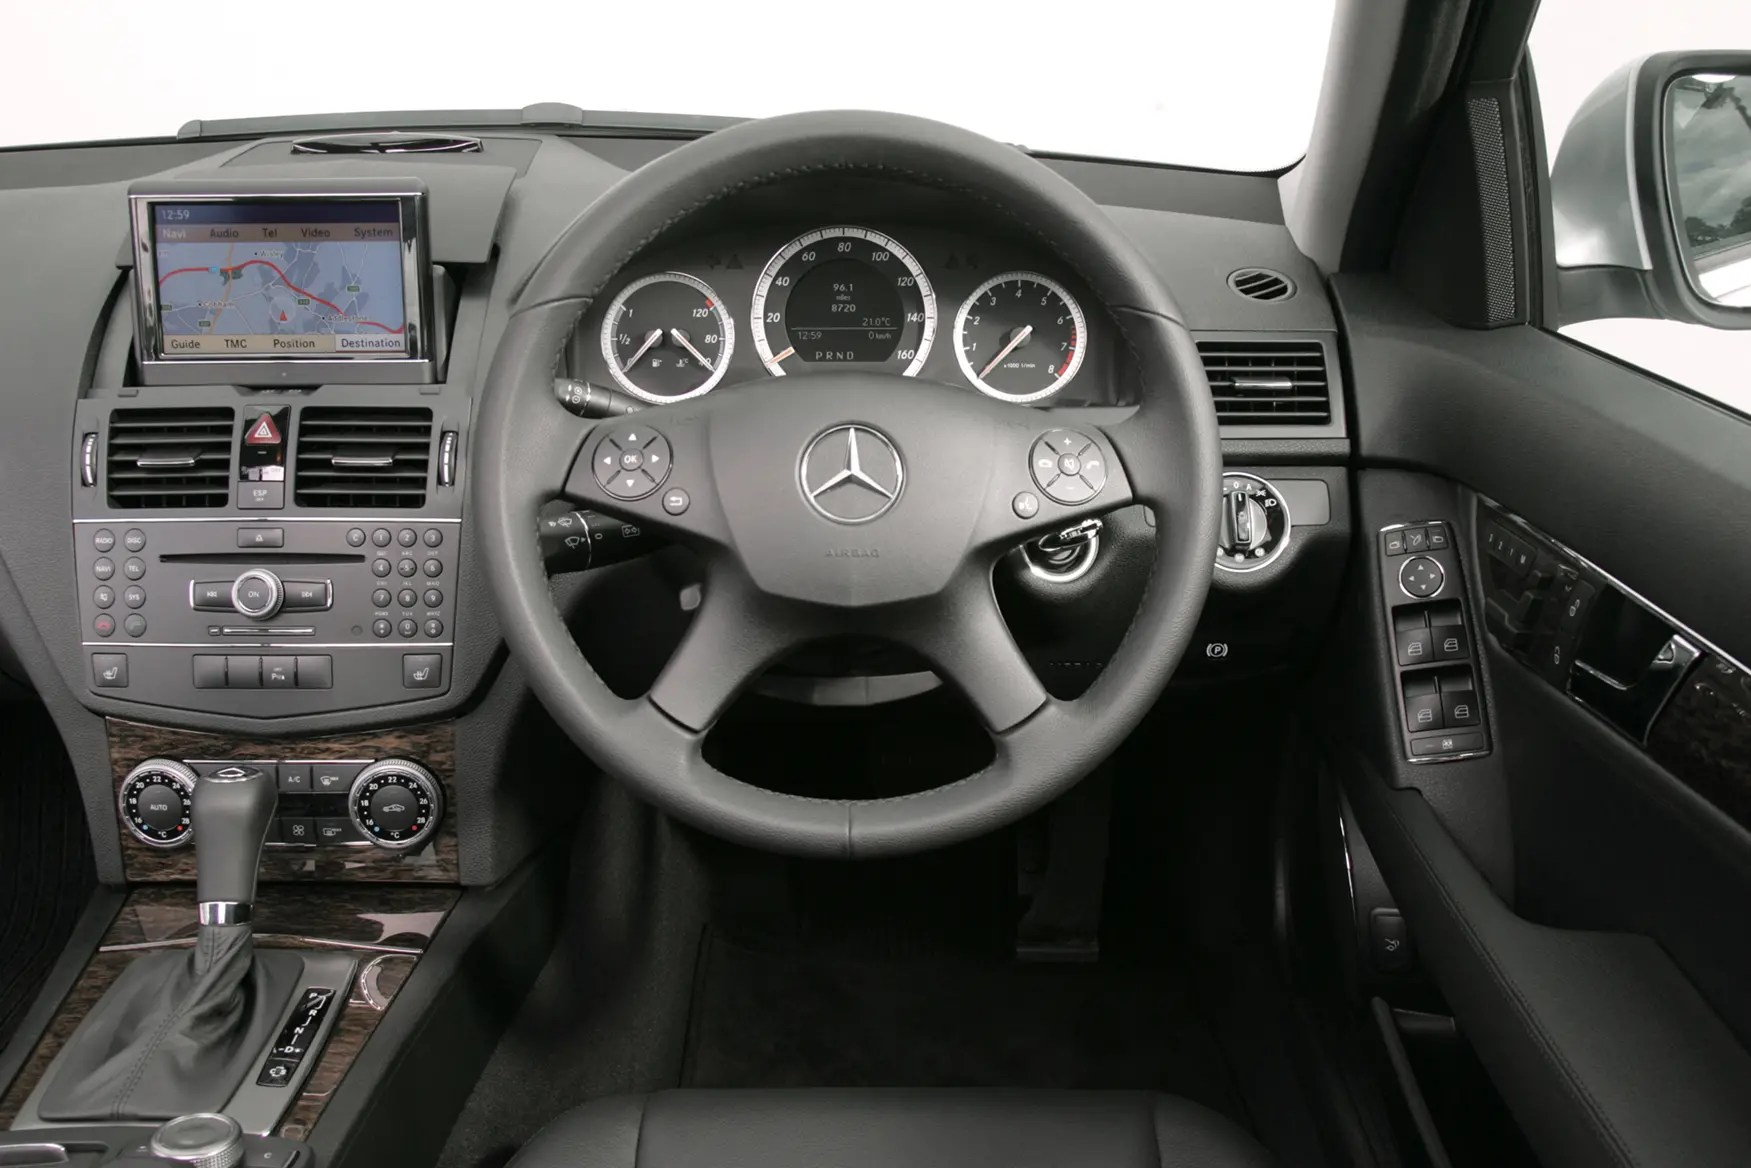 hight resolution of 2010 mercede c 300 interior